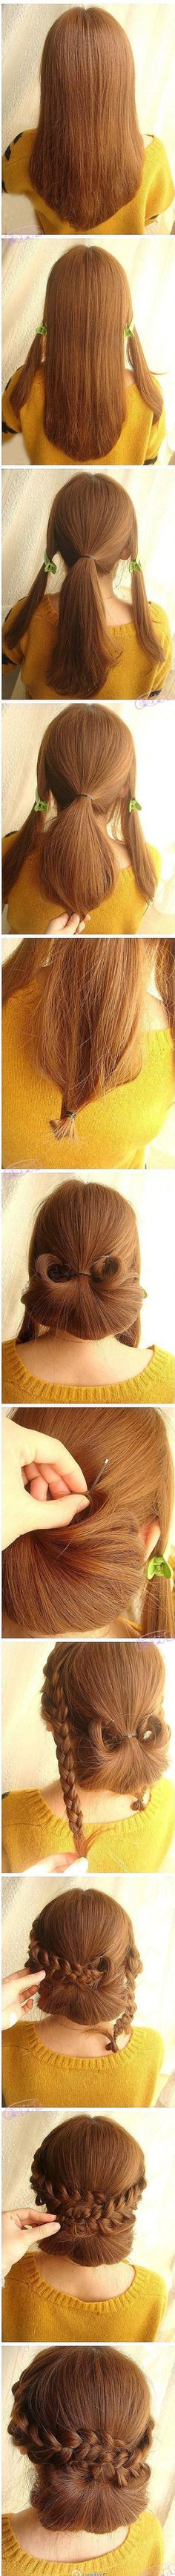 Braided Hairstyles 2014